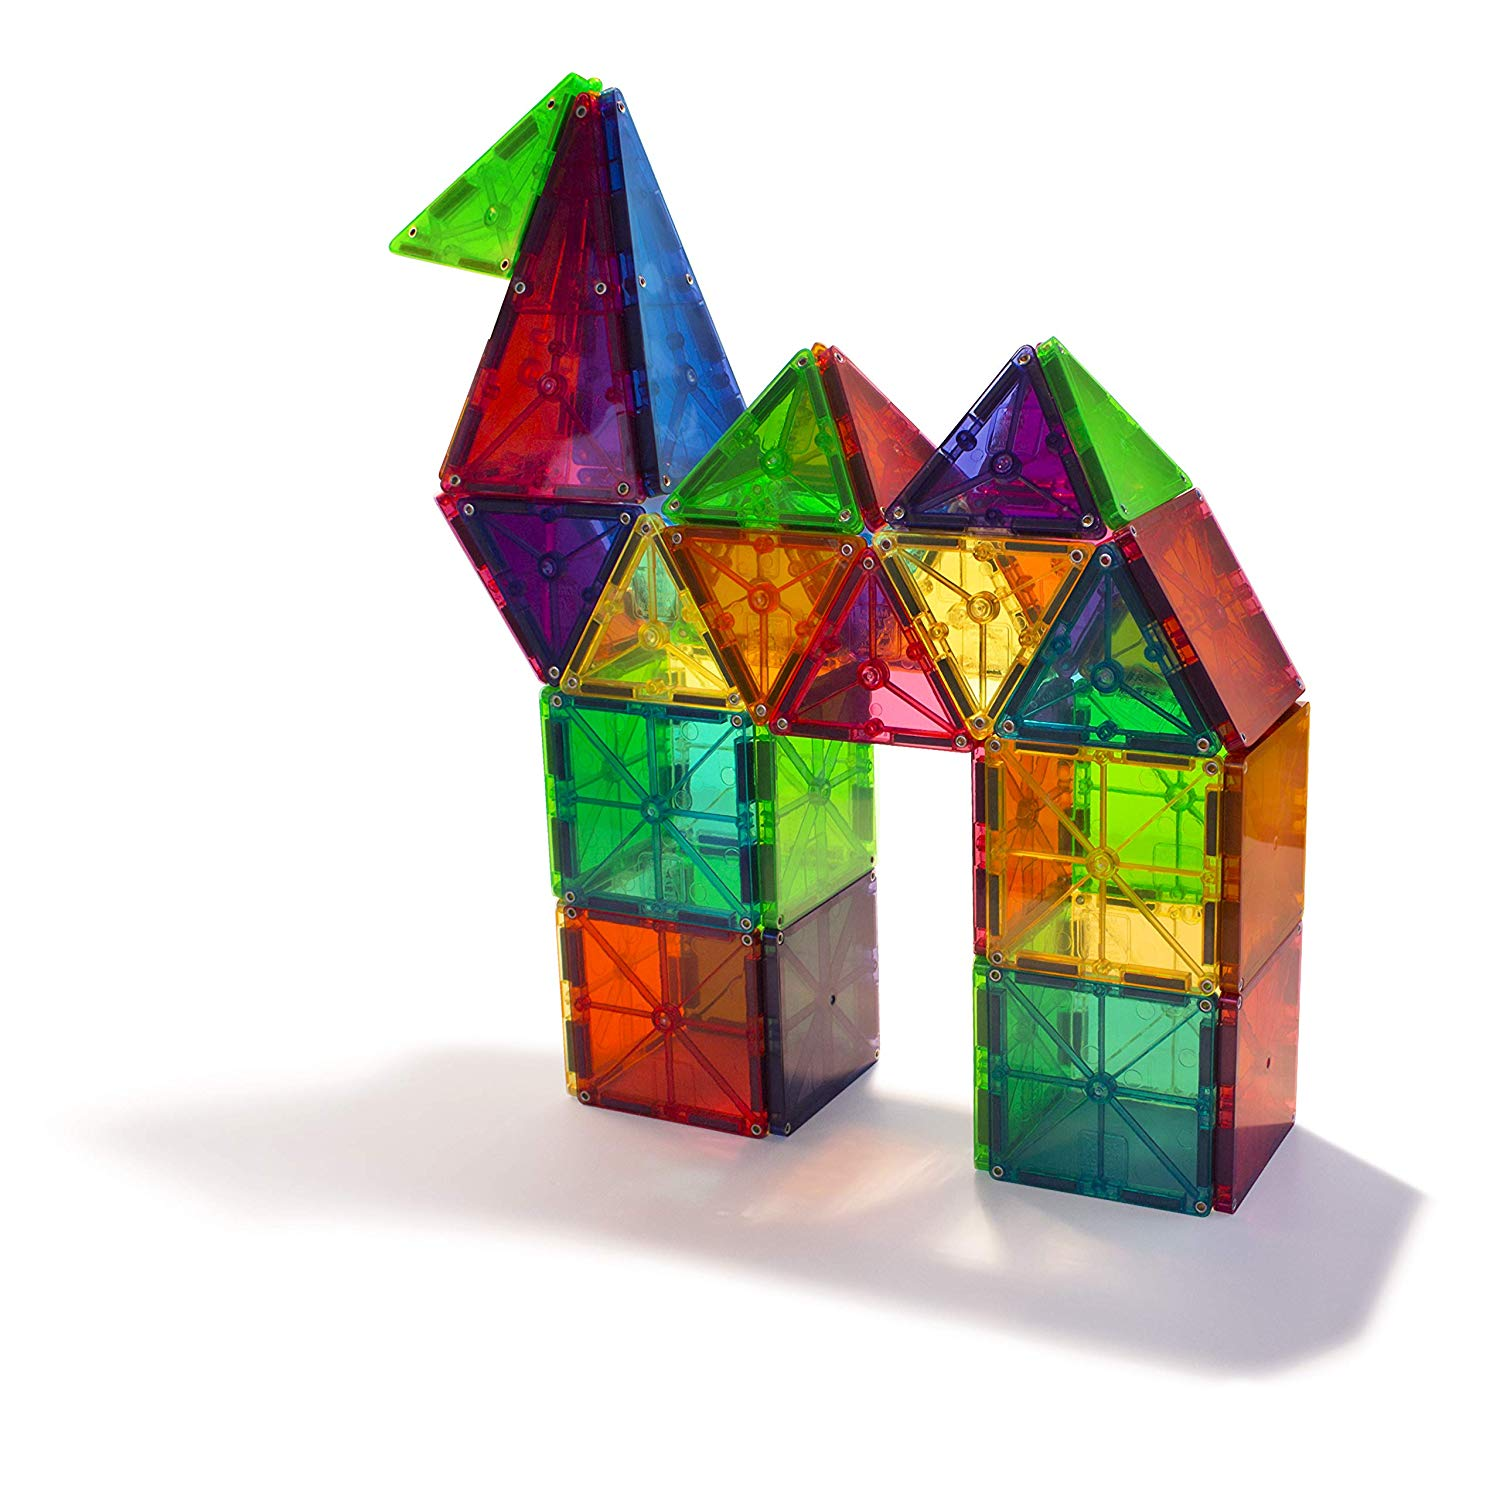 Kids can construct different forms with the Magna Tiles